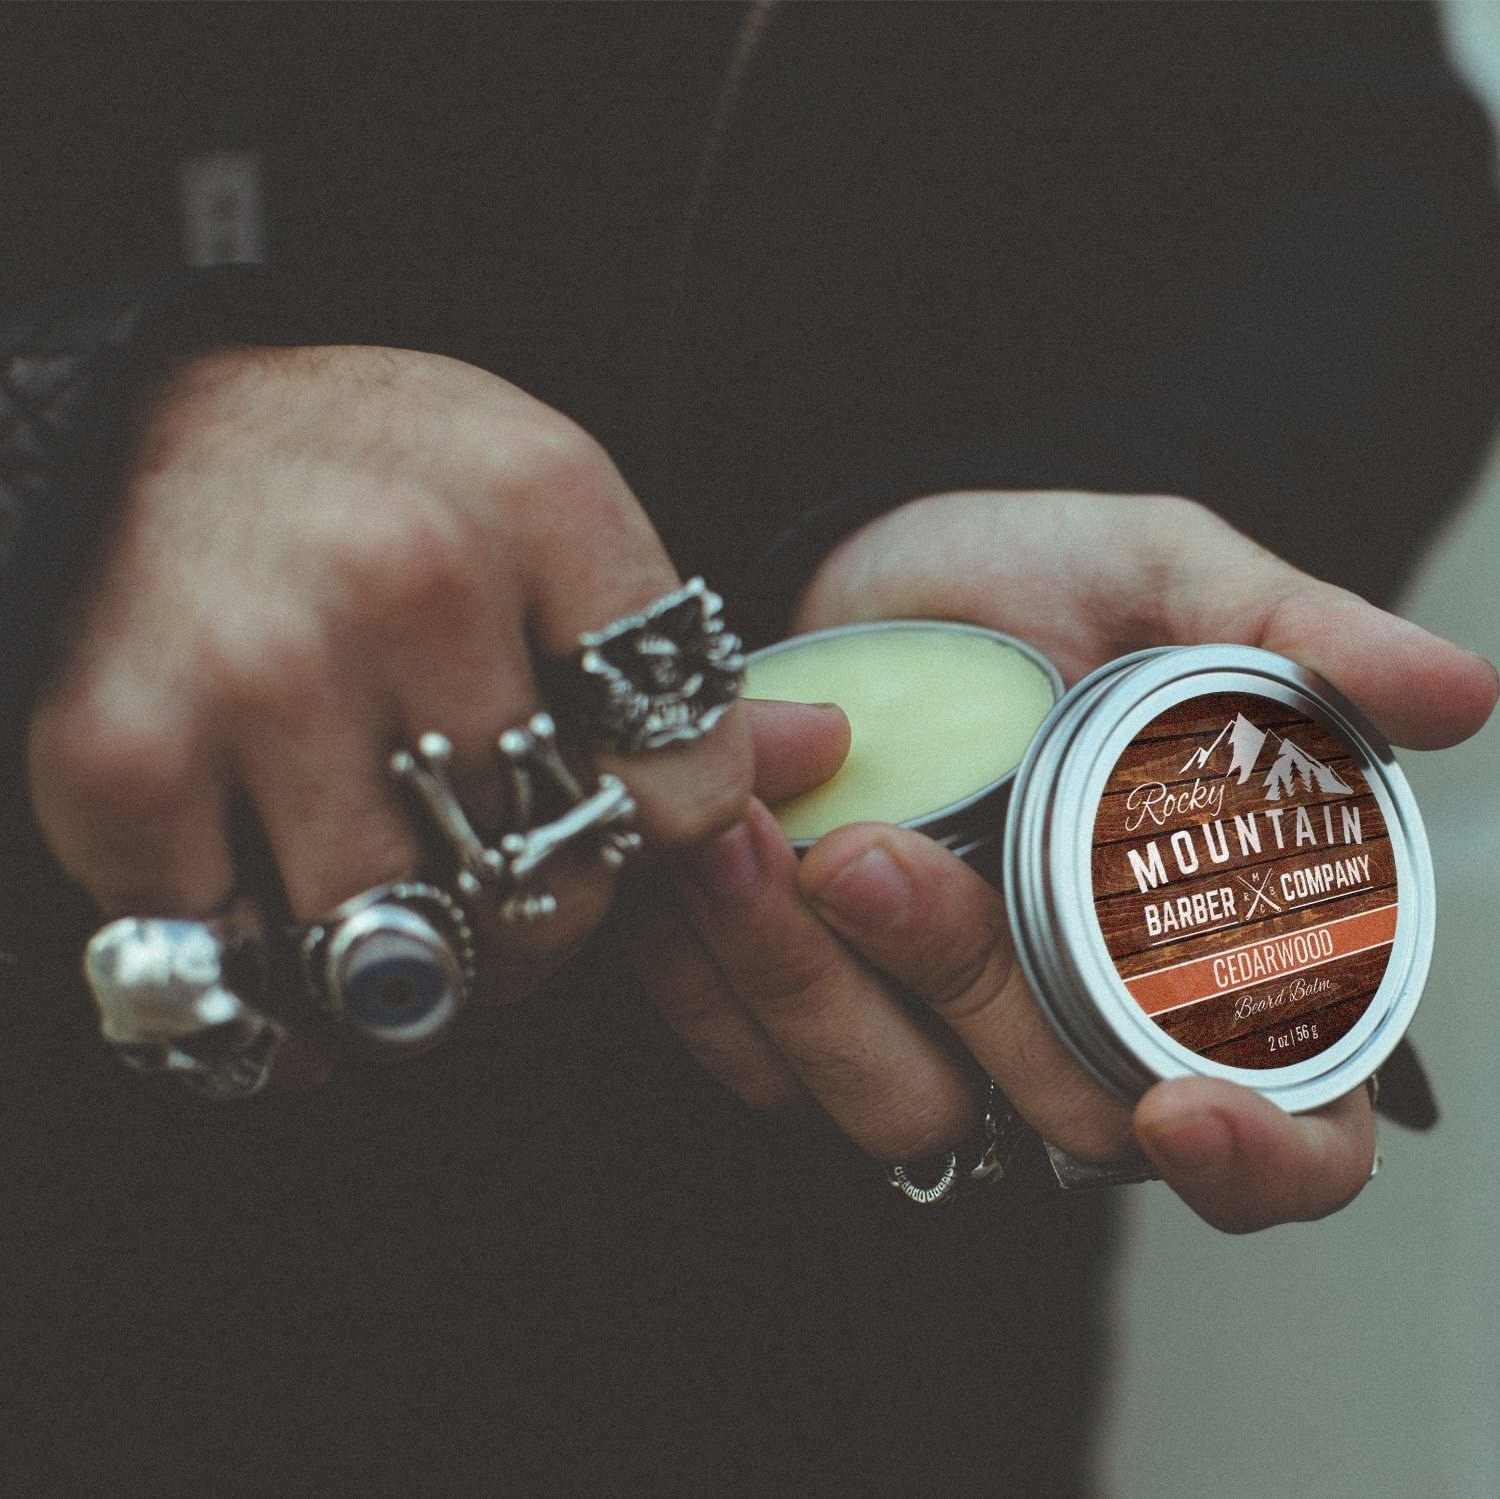 A close up of a person rubbing their thumb in the beard balm